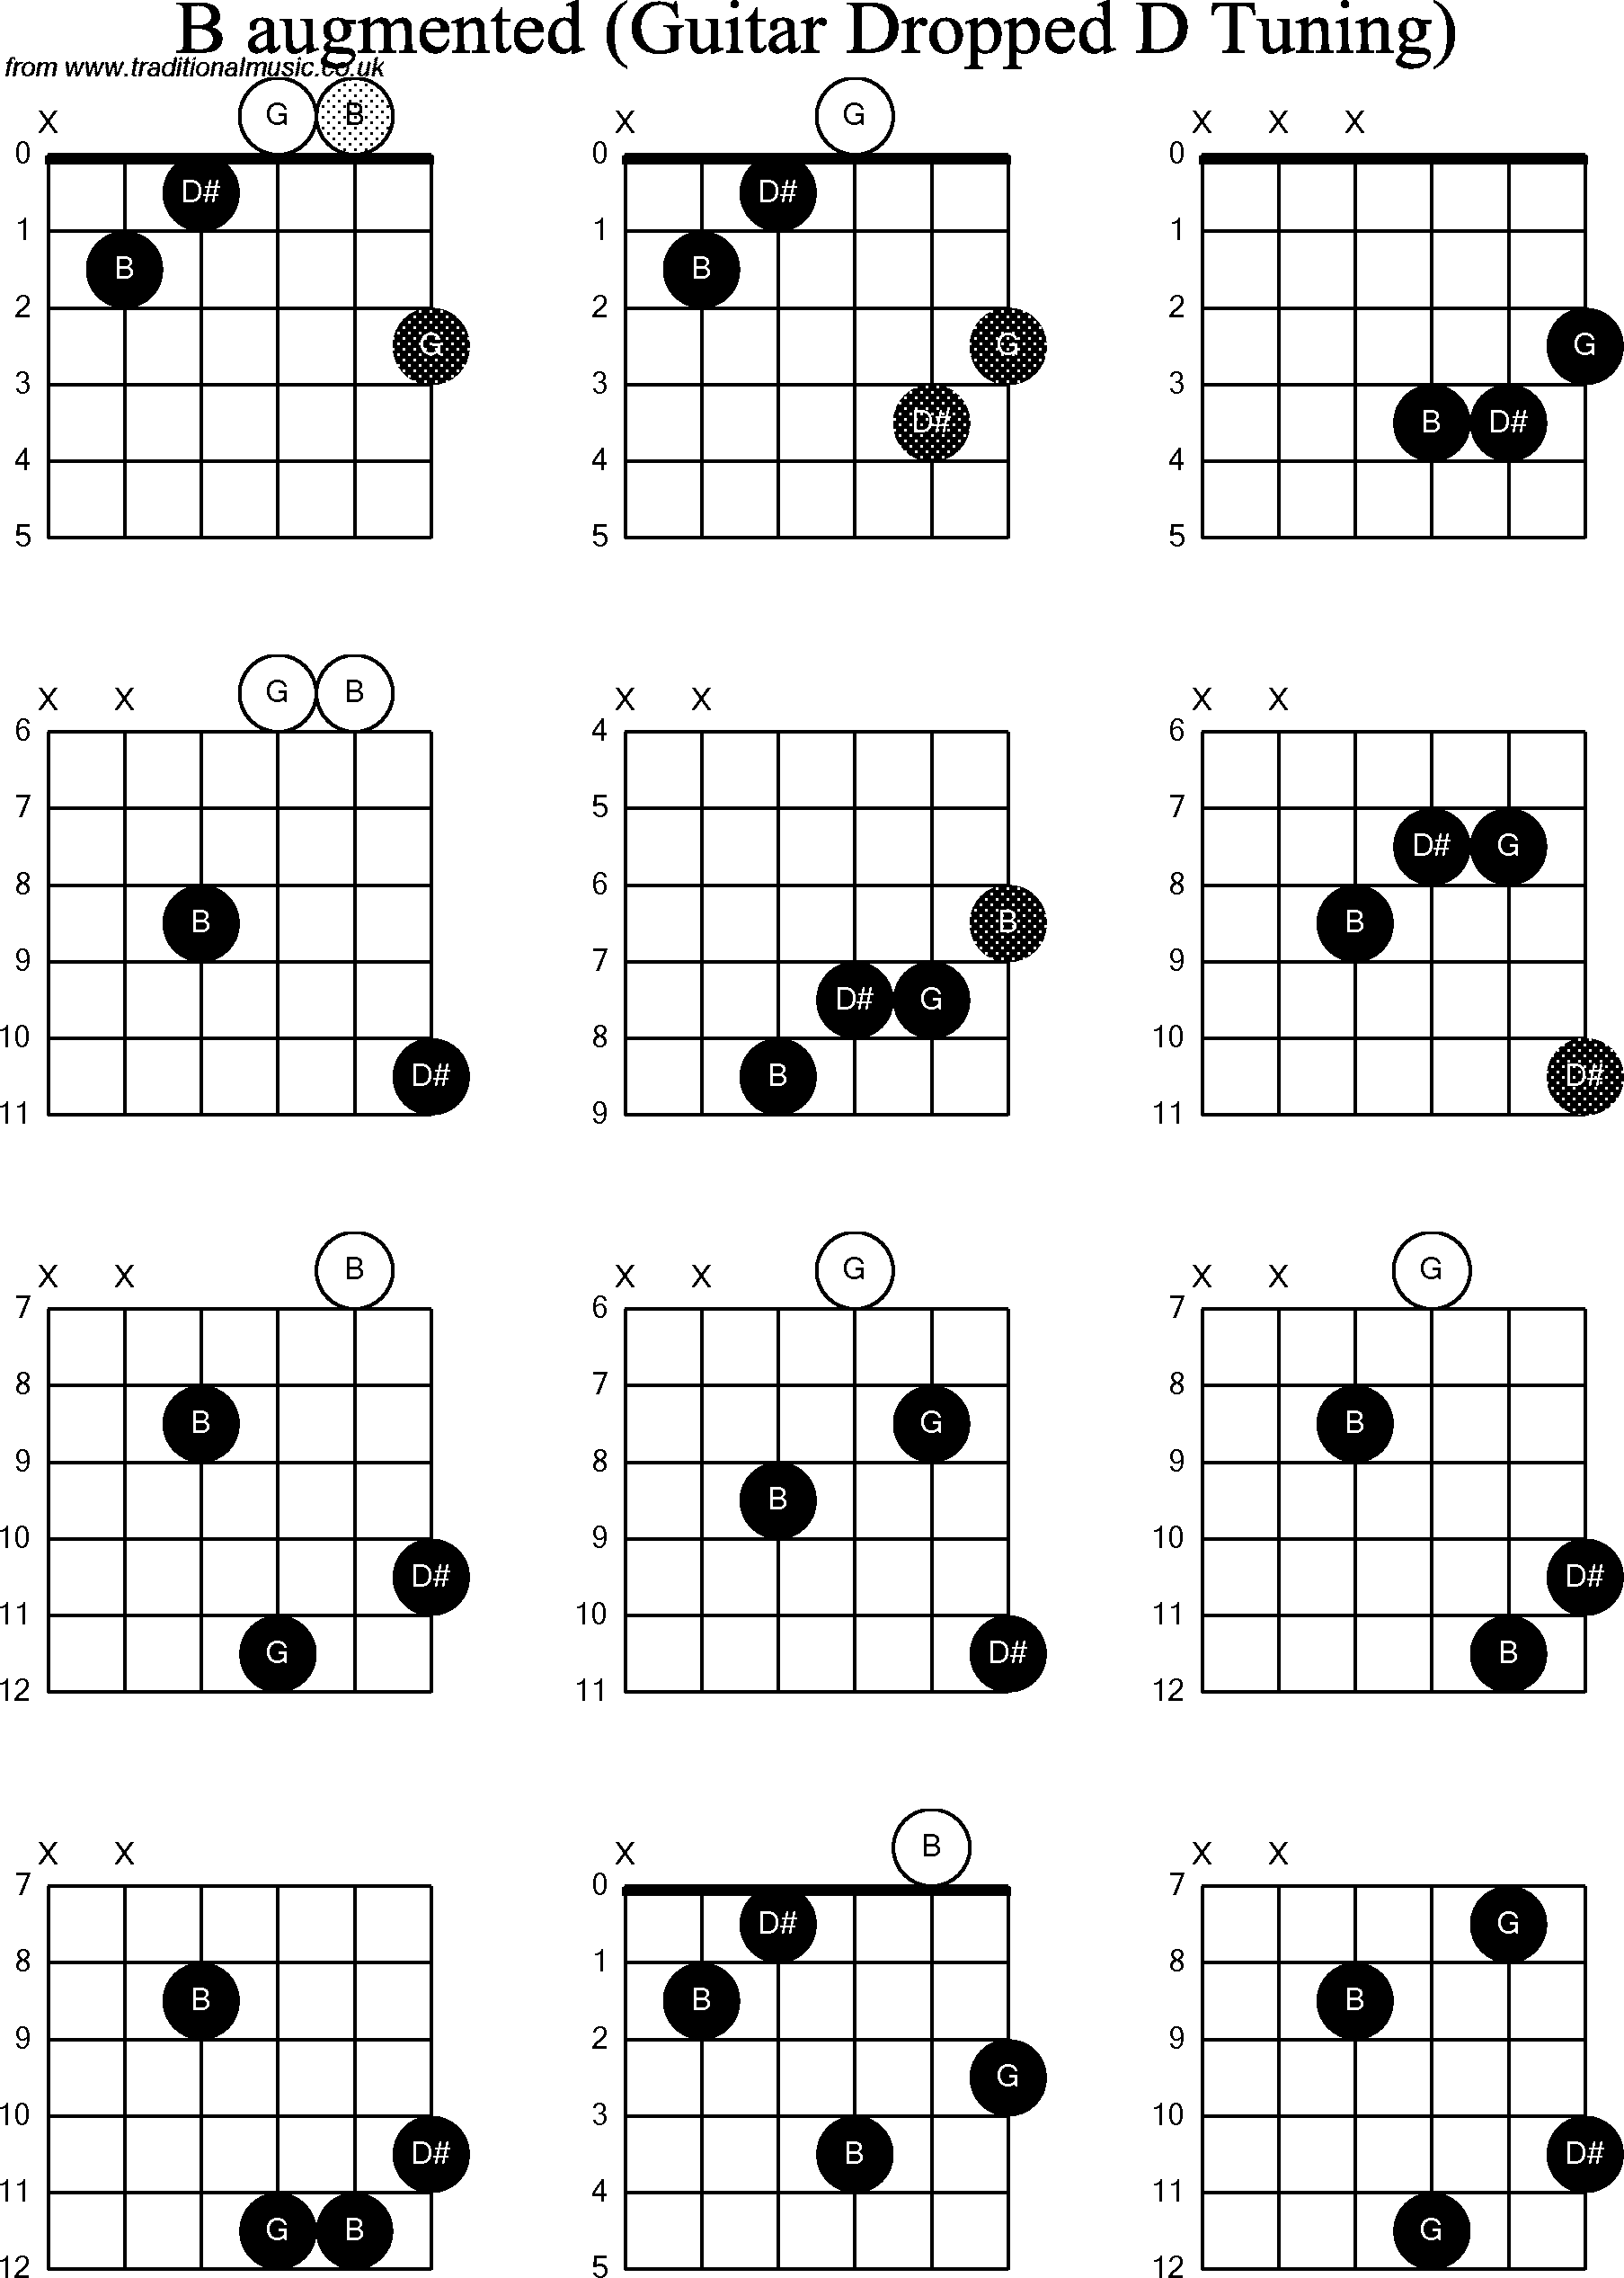 chord diagrams for dropped d guitar dadgbe   b augmented